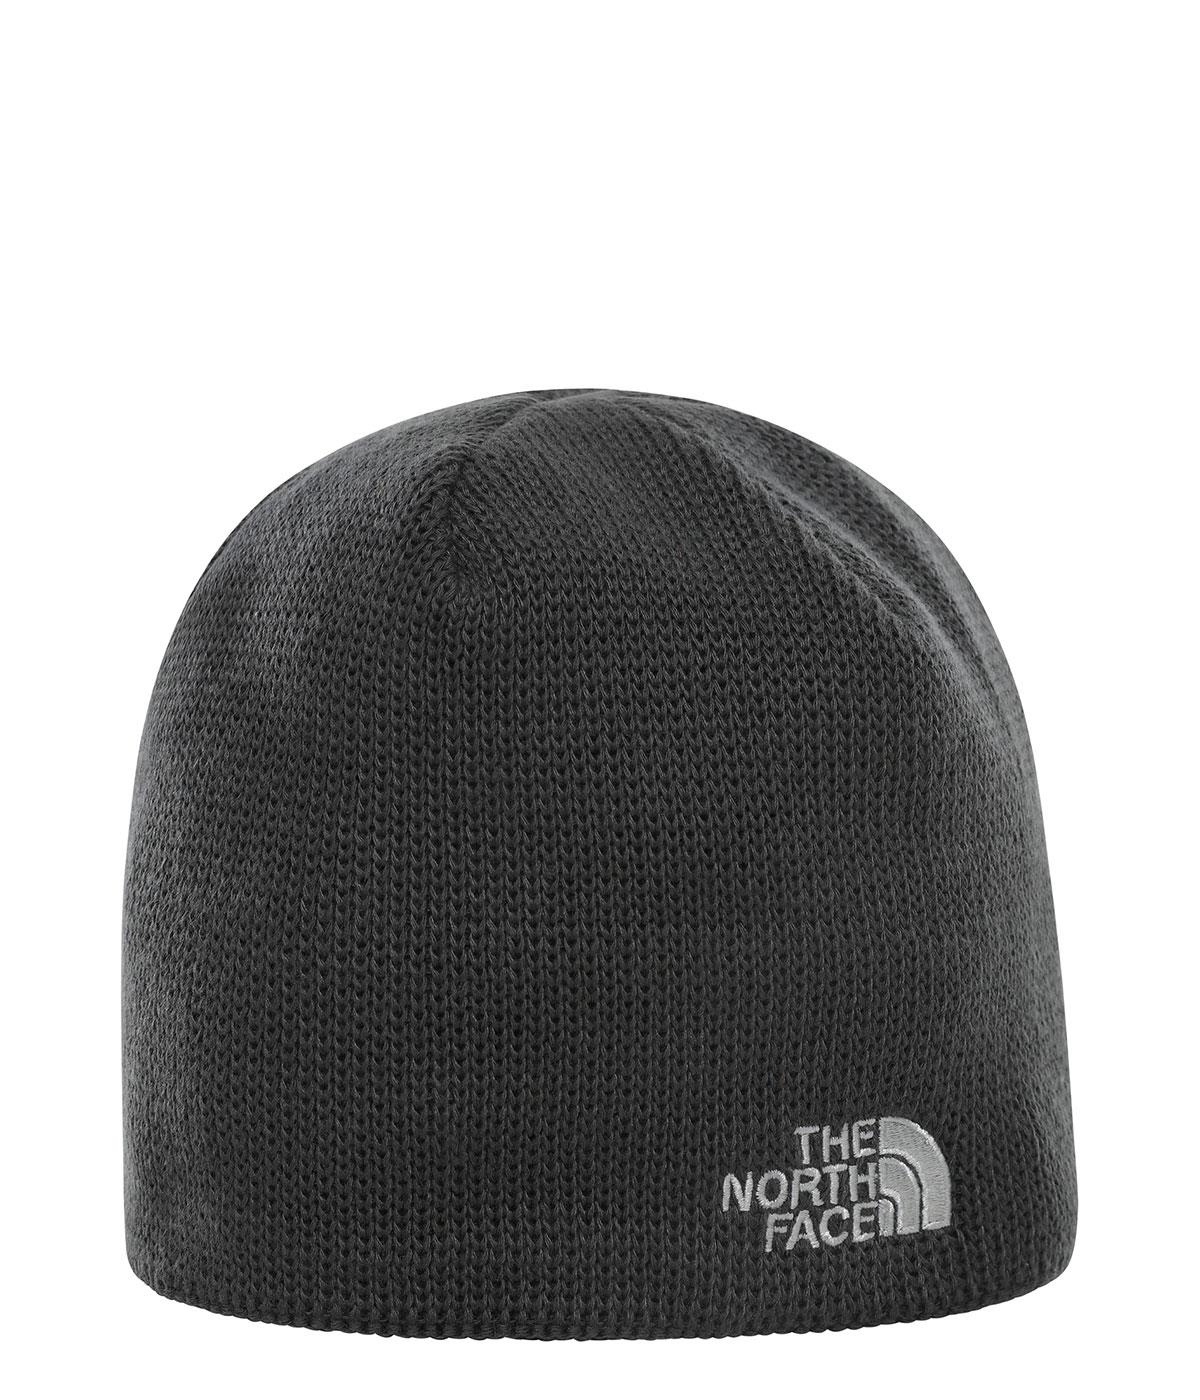 The North Face Bones Recyced Bere Nf0A3Fns0C51